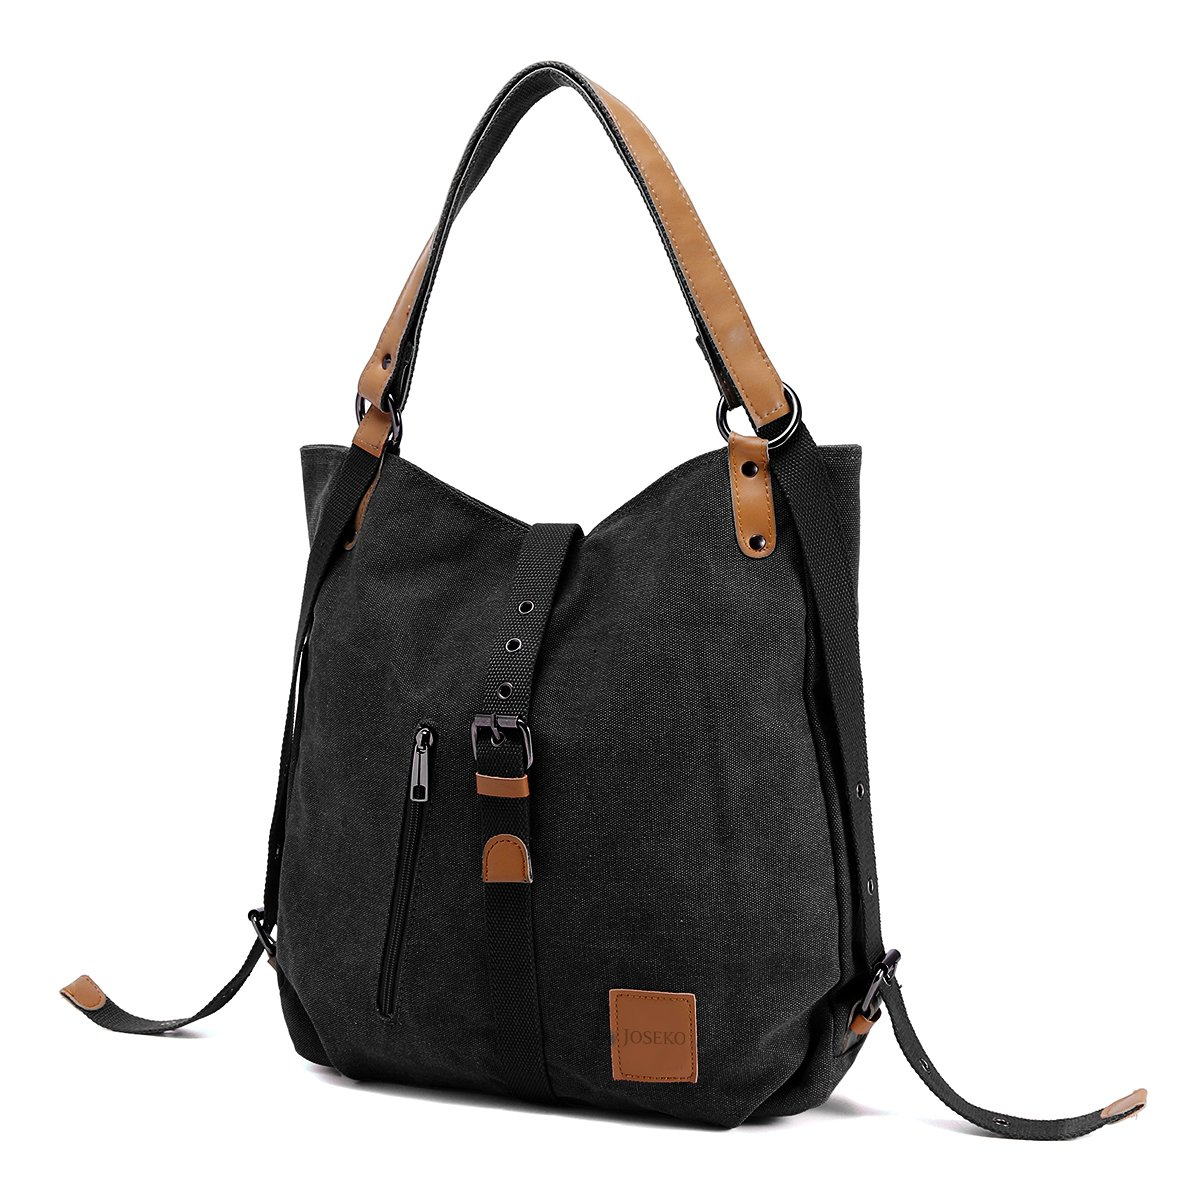 23ad304d0 Fashion Shoulder Bag Rucksack, JOSEKO Canvas Rucksack Multifunctional Casual  Daily Handbag Travel Backpack for Women Girls Ladies Female Black: ...